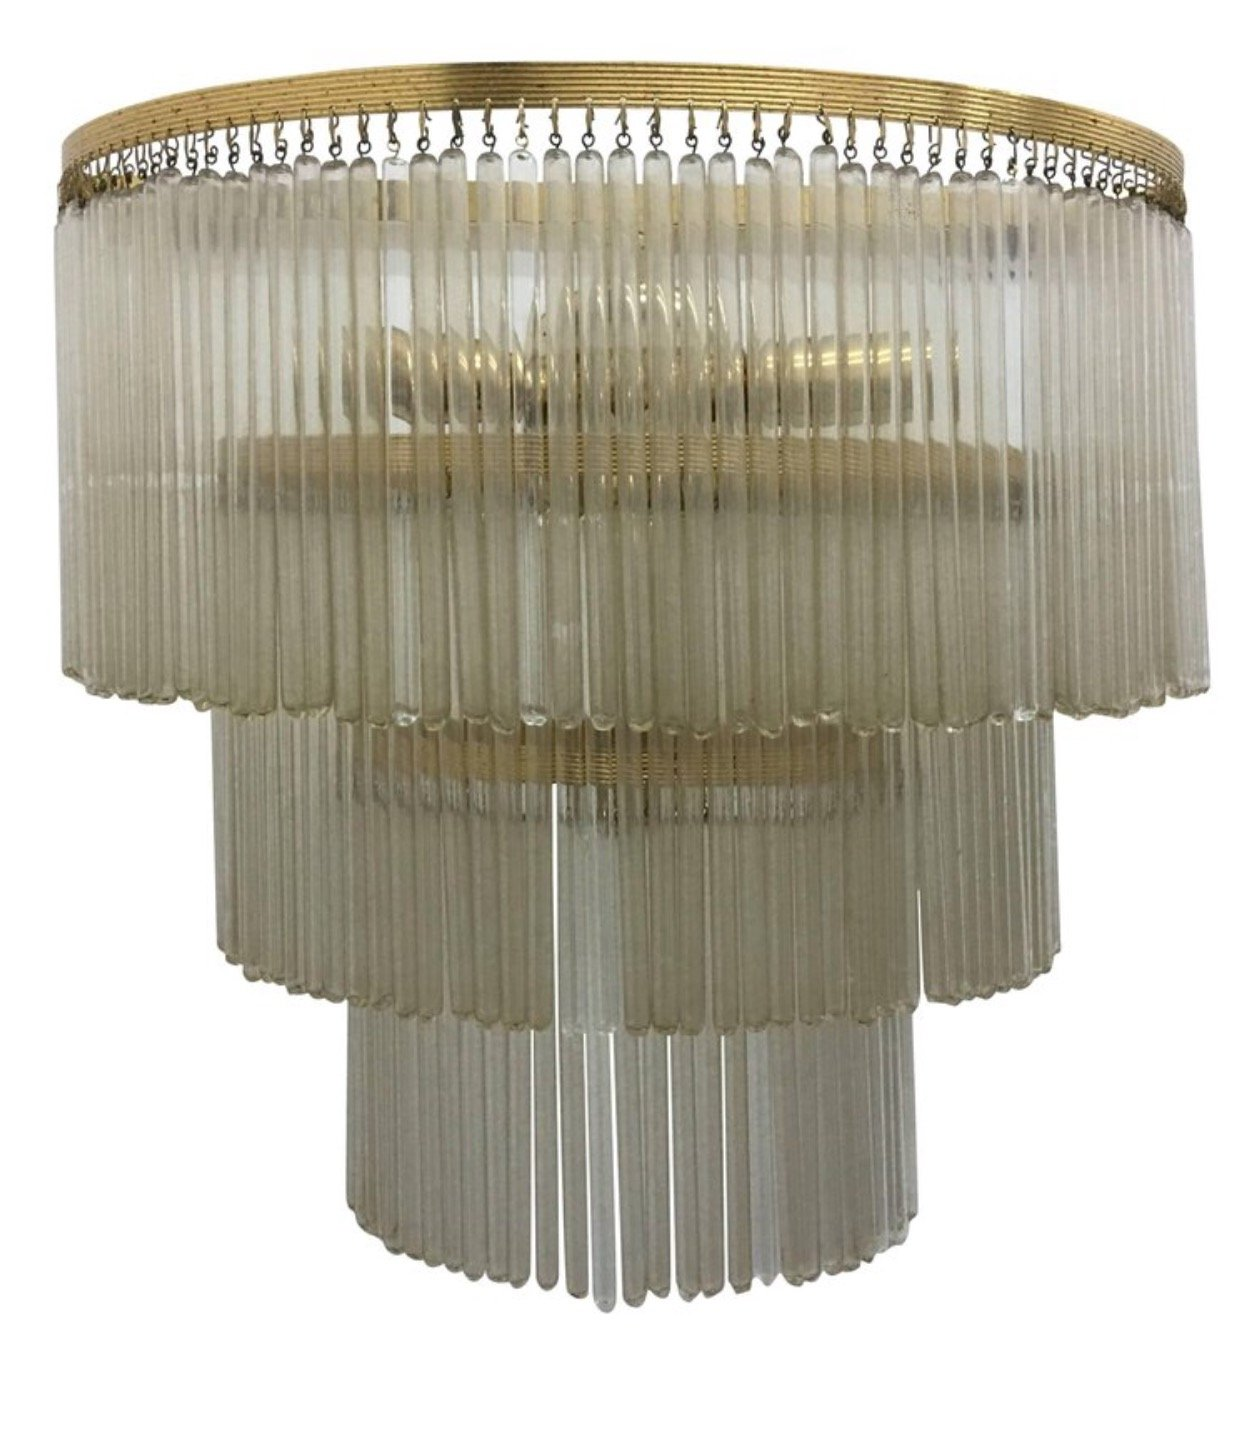 Huge Mid Century Modern Brass Glass Wall Sconce Italy 1950s 106009